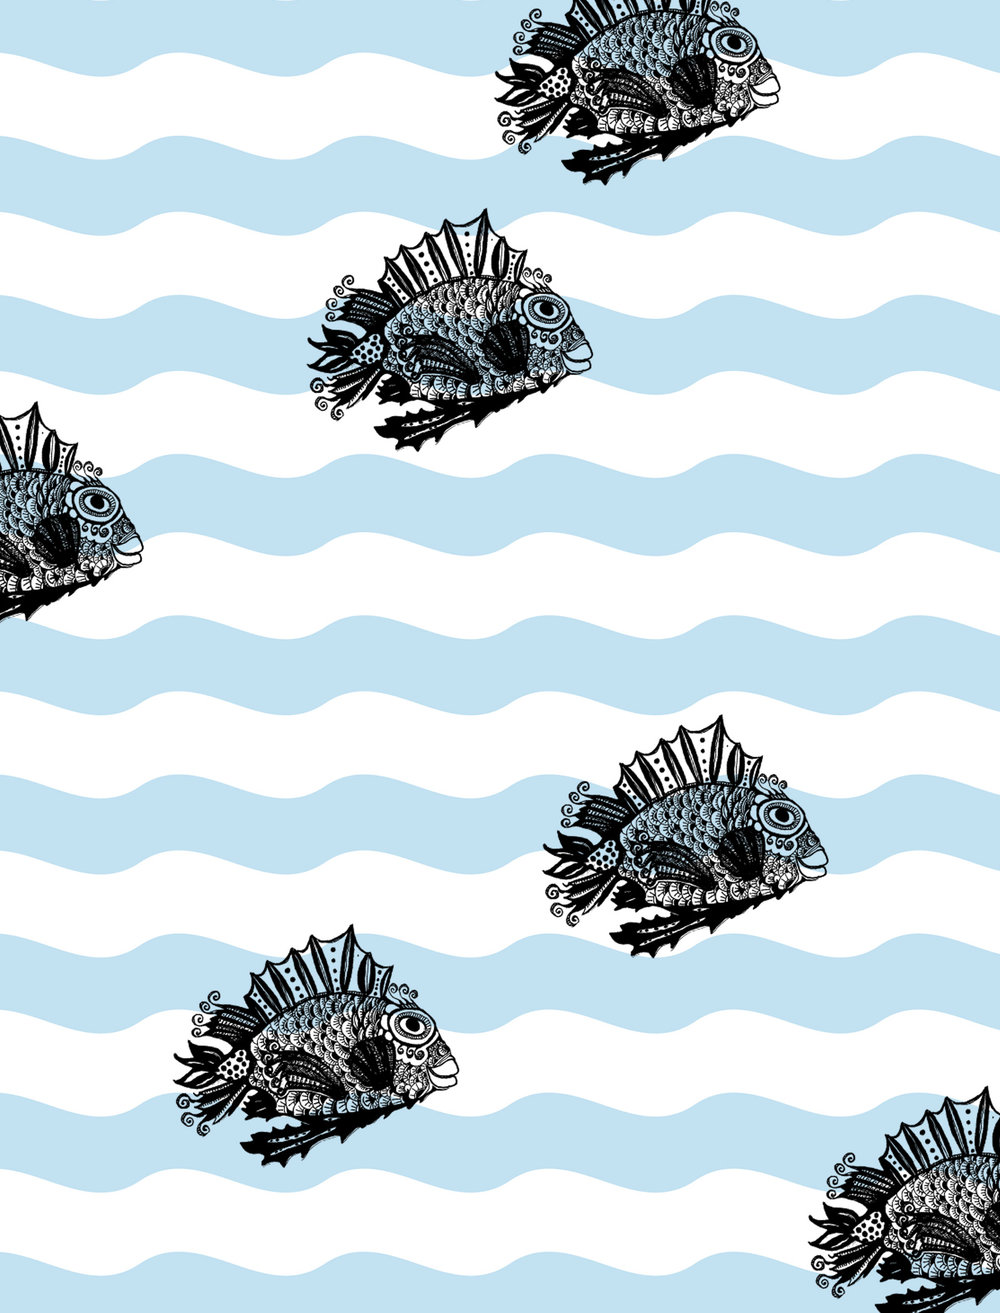 Fish+on+blue+wave+pattern.jpg